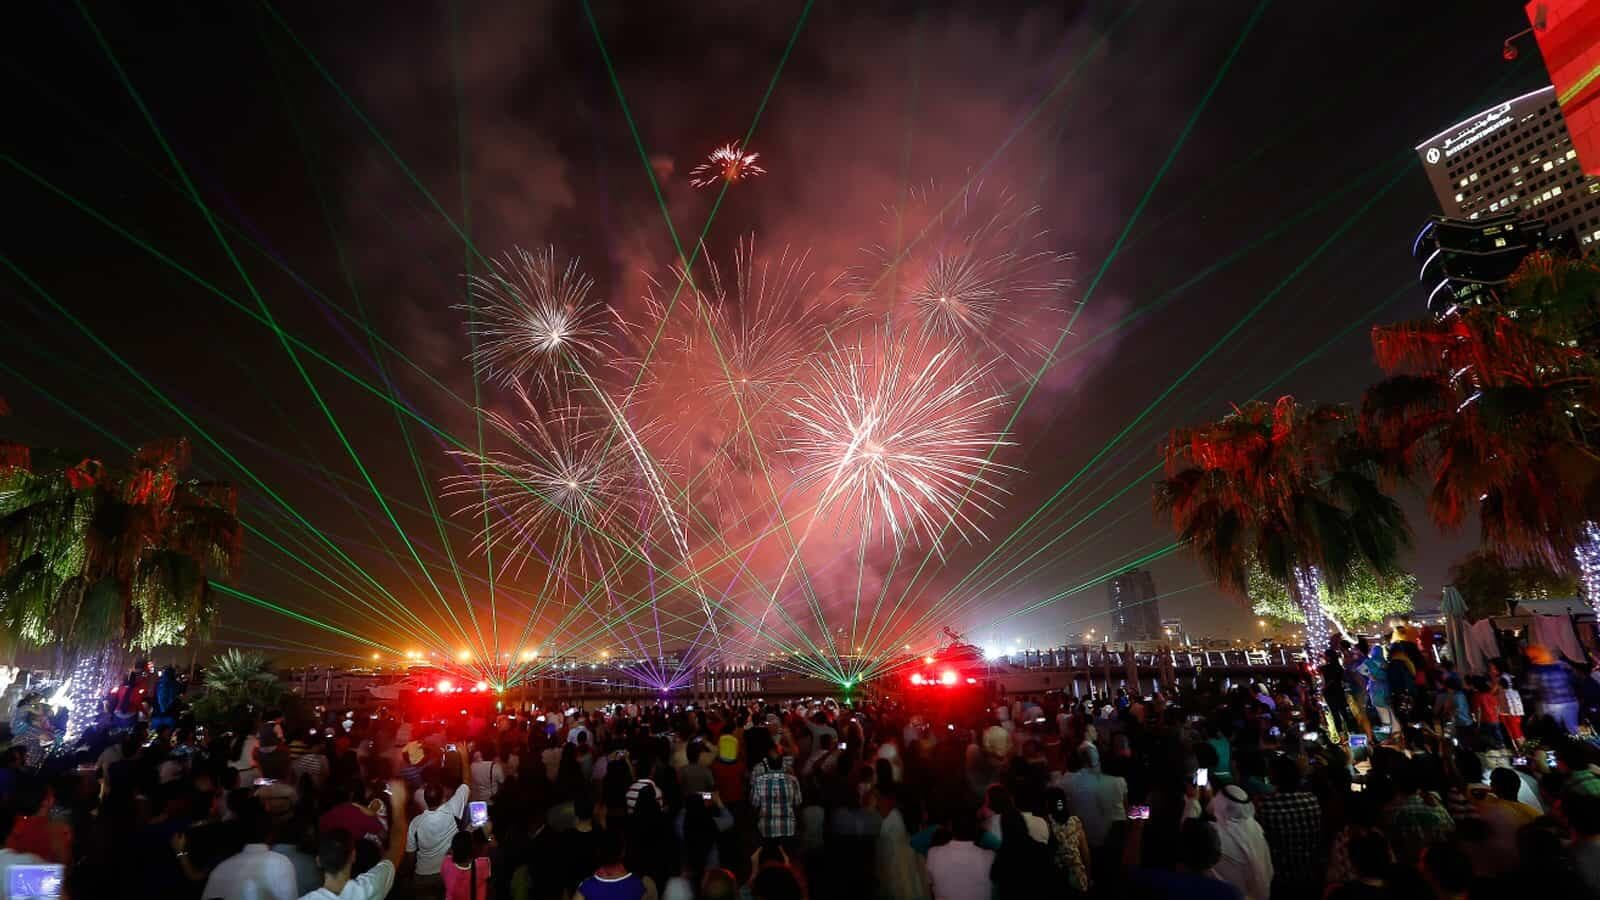 Pack your long weekend with fireworks, family and fun